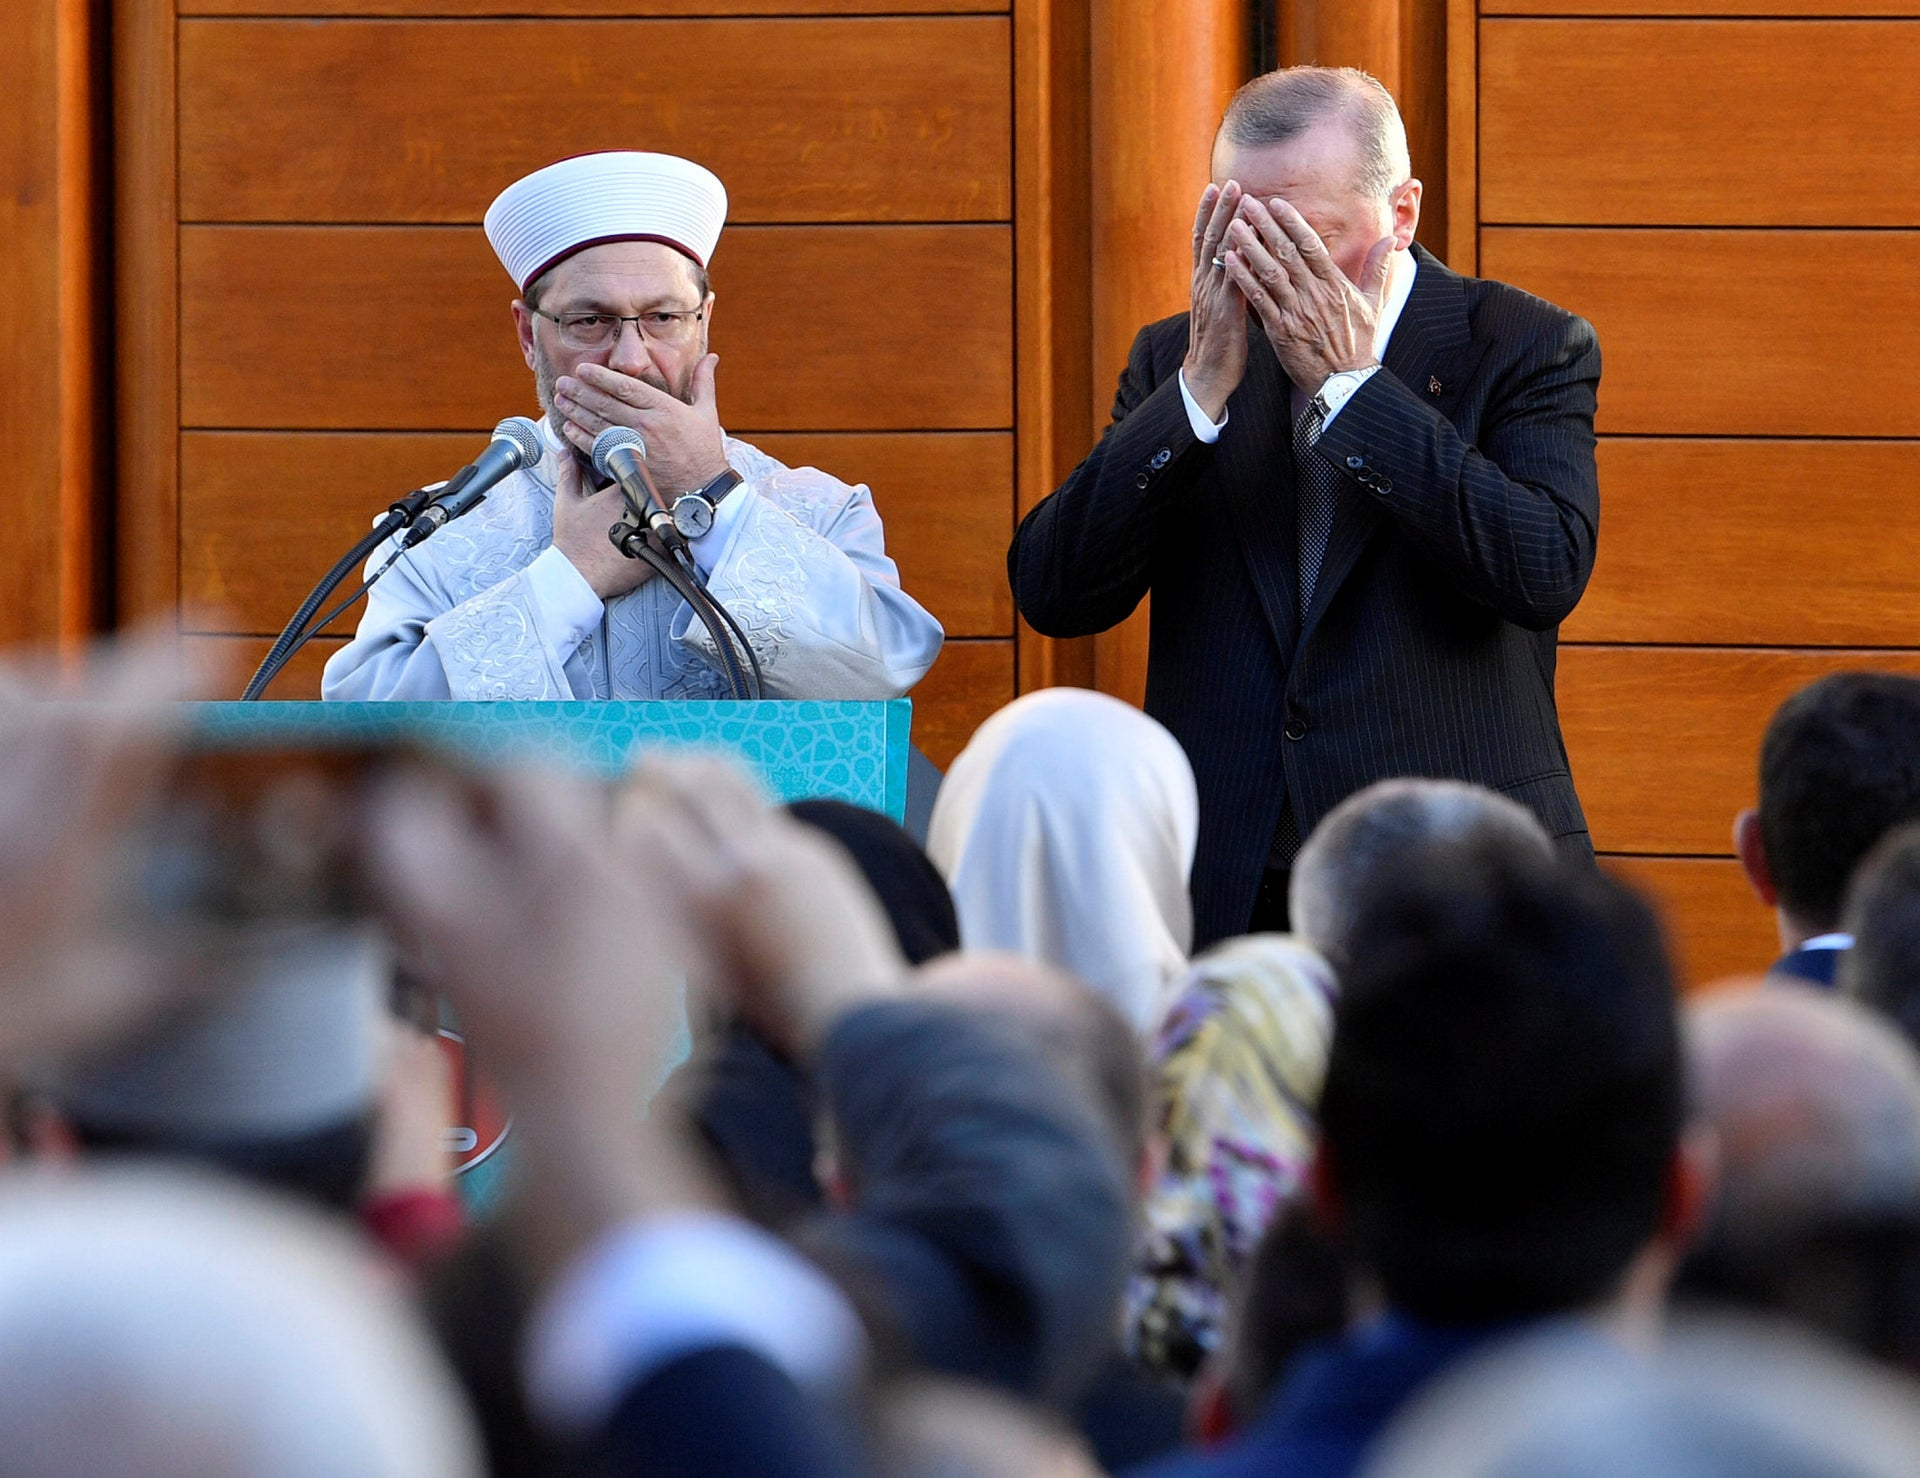 Turkish President Recep Tayyip Erdogan and Diyanet President Ali Eras cover their faces during a prayer on occasion of the opening of the new mosque in Cologne, Germany, on Saturday, Sept. 29, 2018.